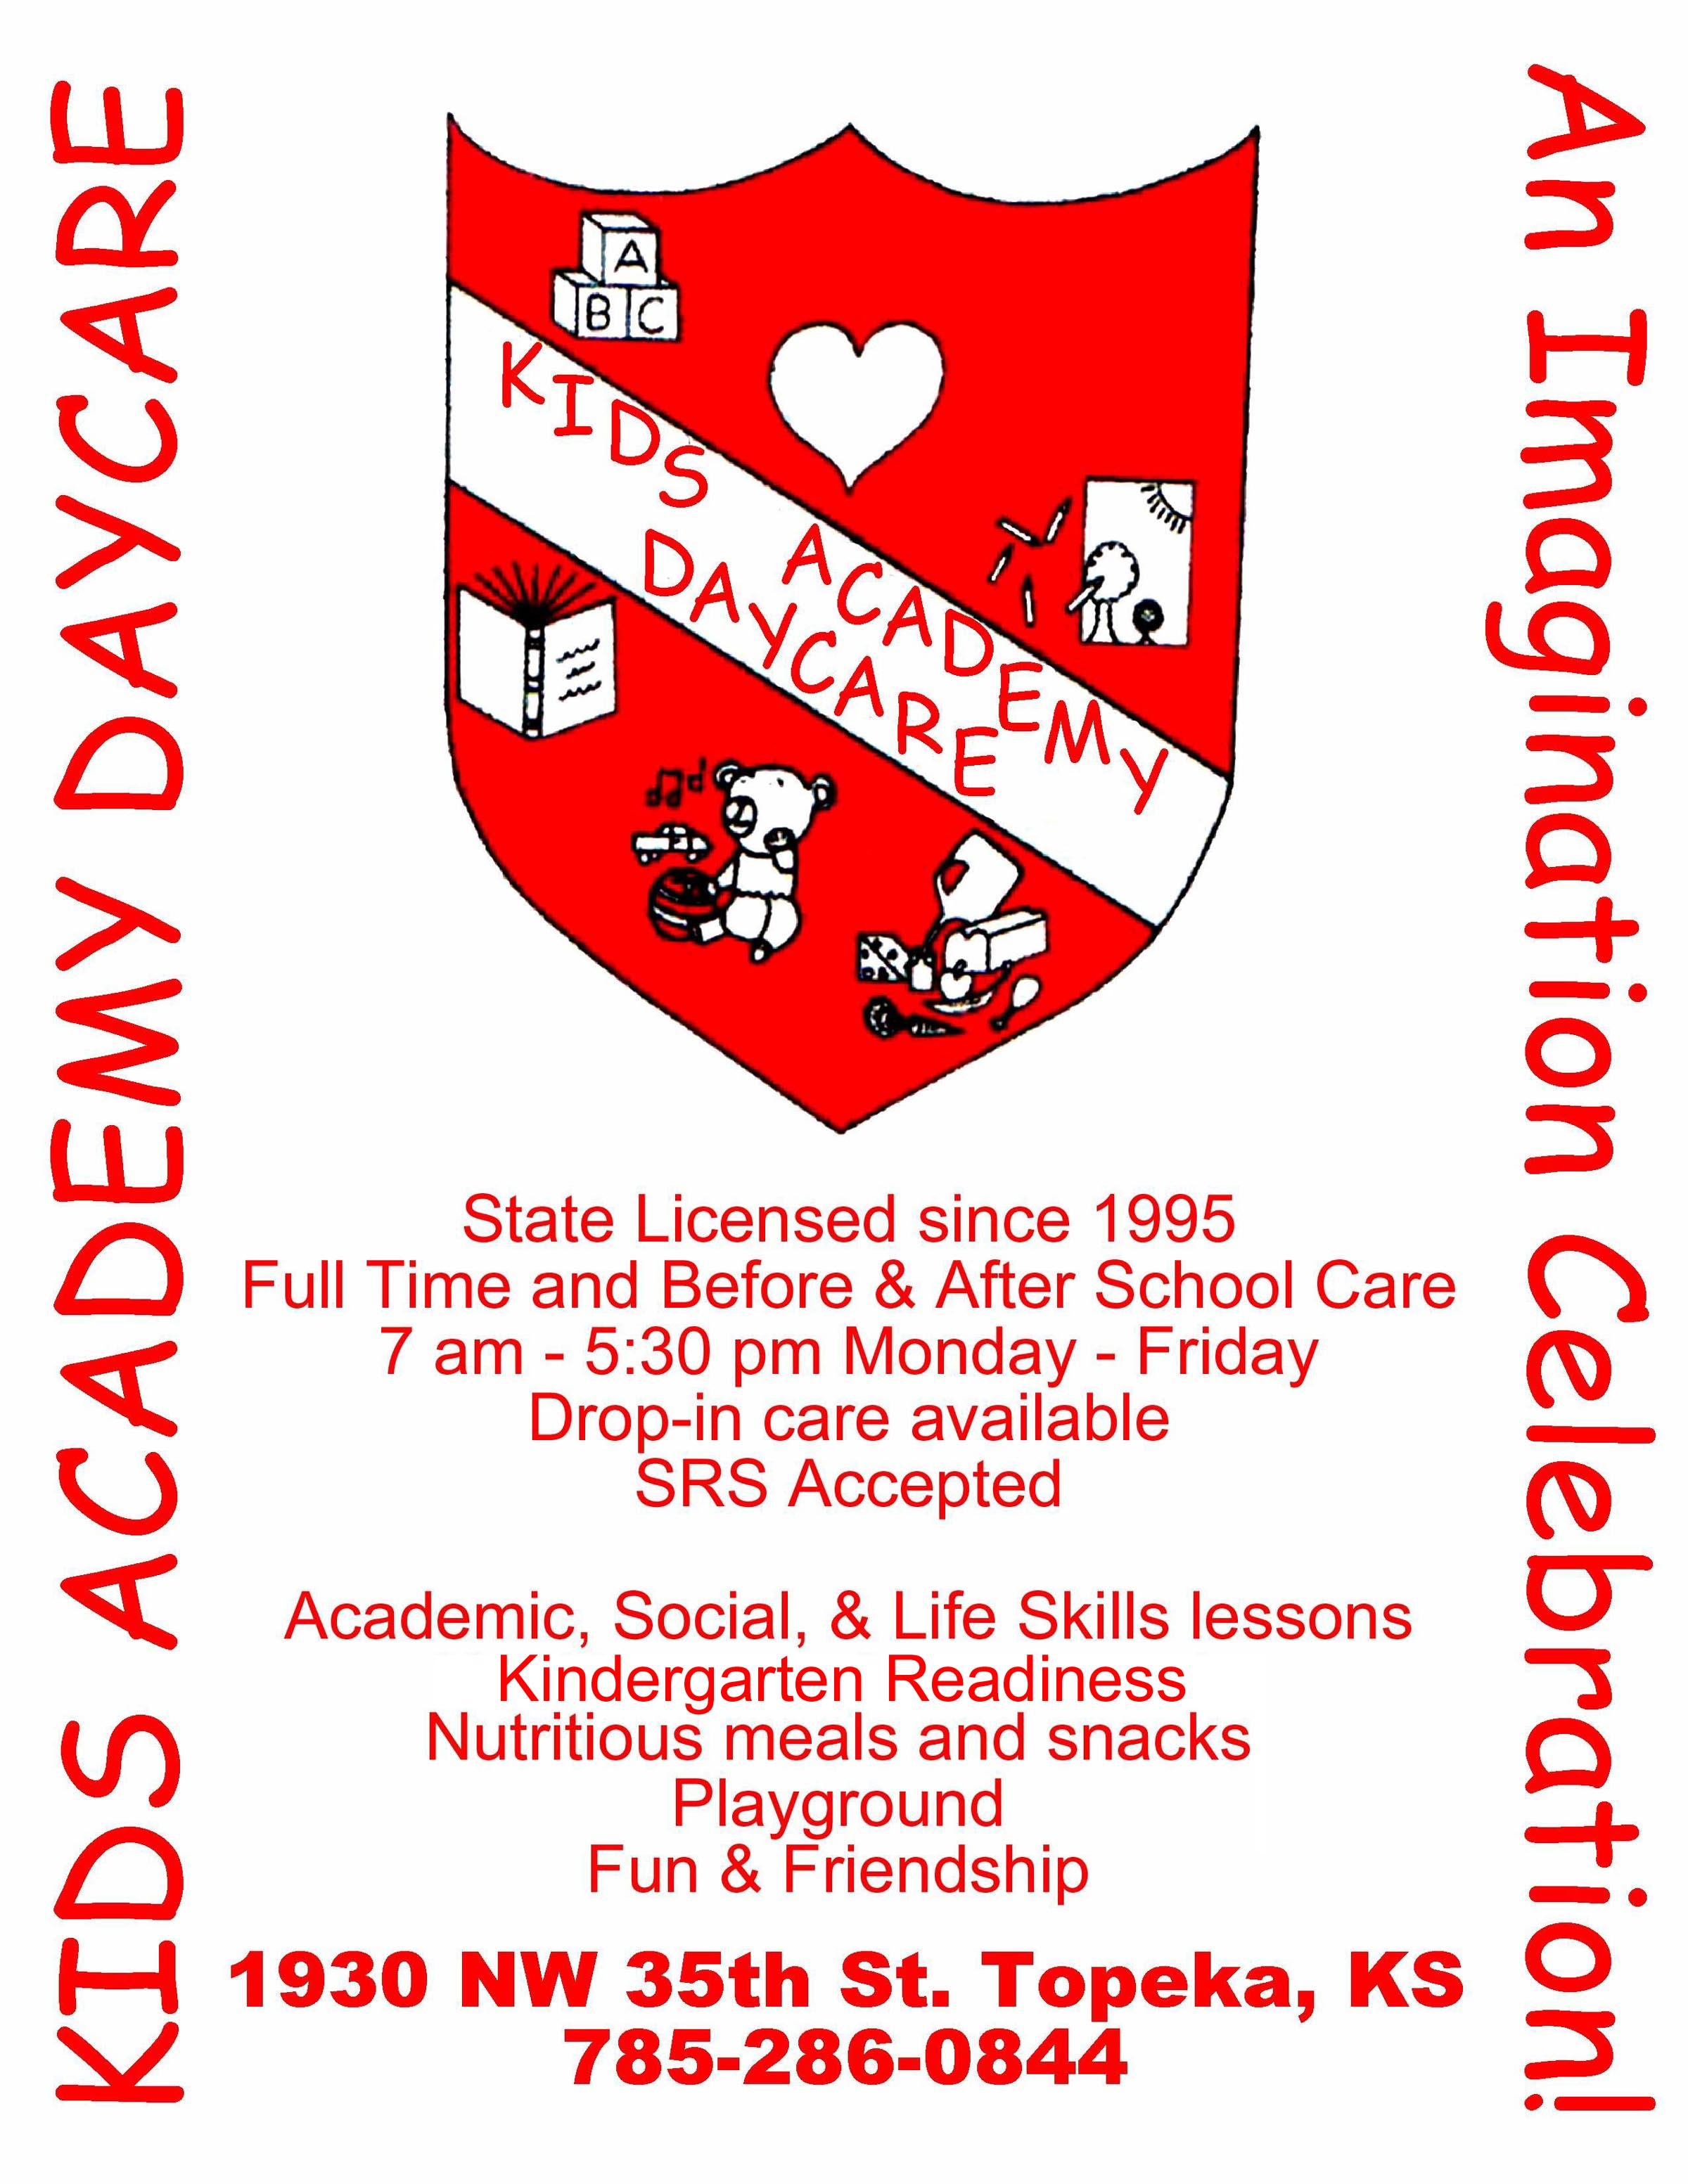 Kids Academy Day Care Home